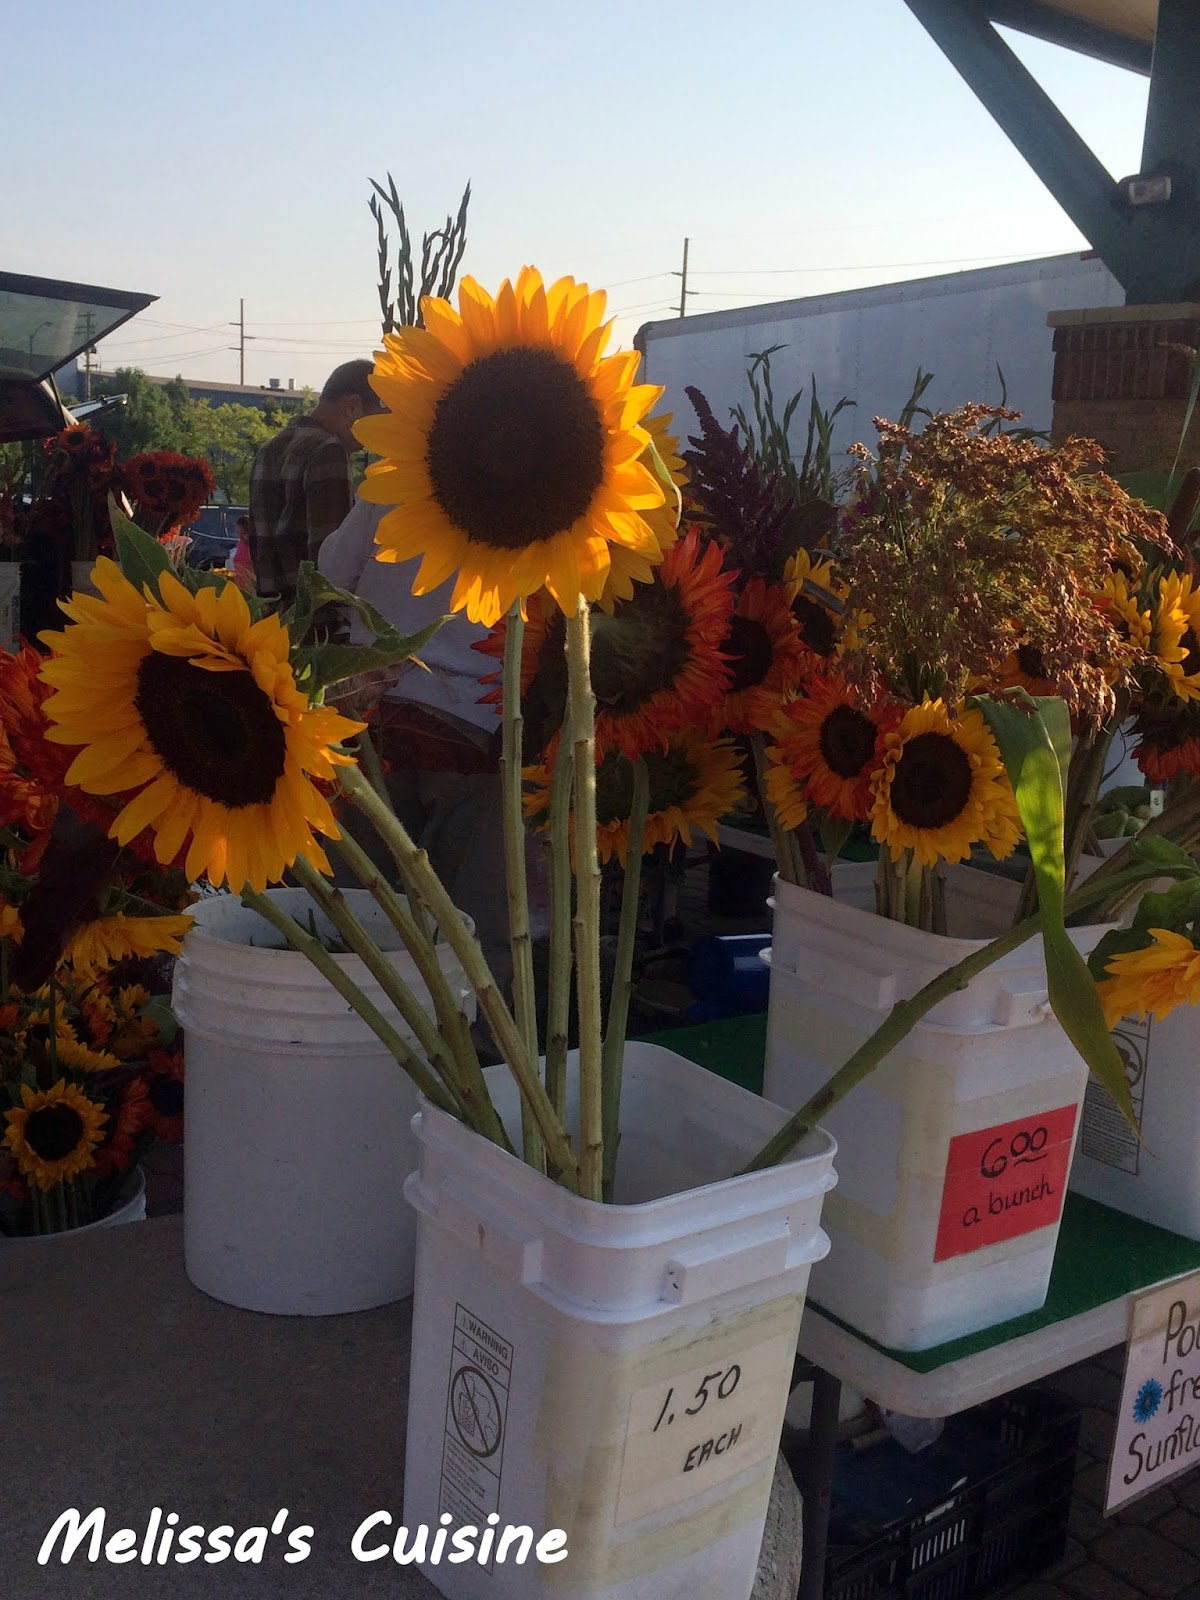 Melissa's Cuisine: A Trip to the Farmer's Market